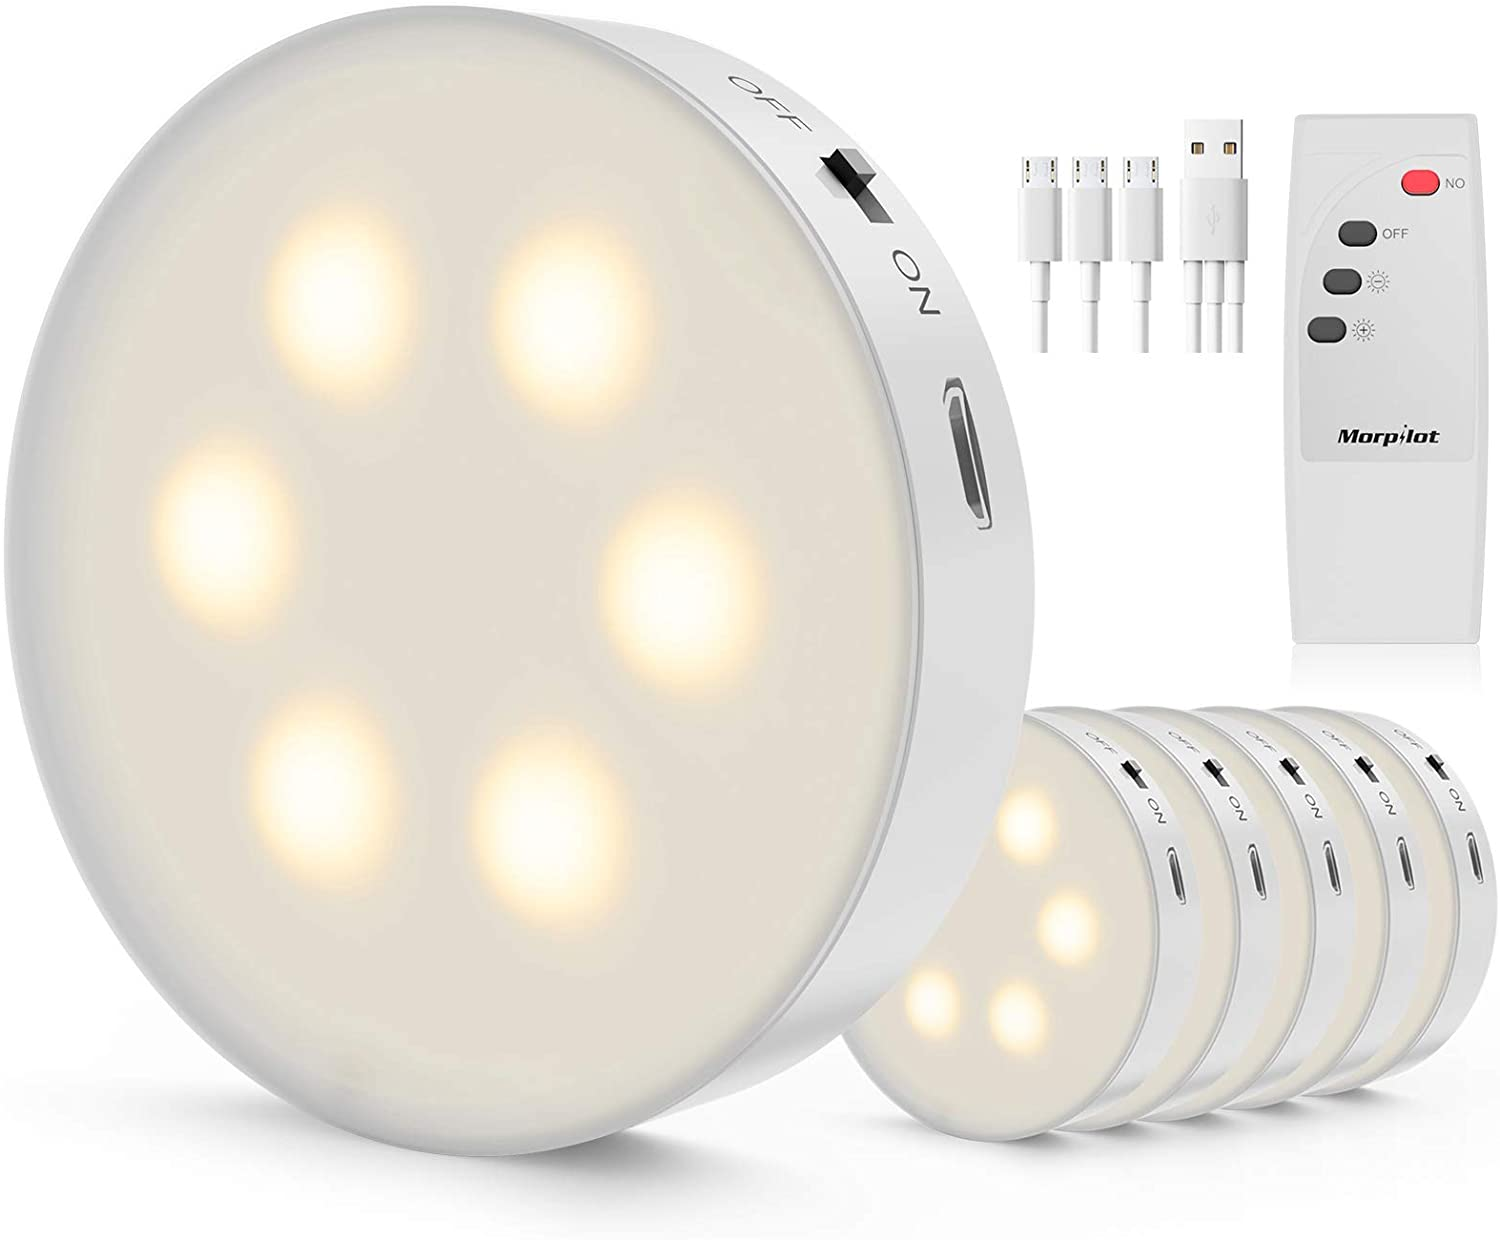 Morpilot Puck Lights, Rechargeable Under Cabinet Lighting, Dimmable Closet Lights Battery Powered, Led Cabinet Light with Wireless Remote, Under Counter Light for Kitchen, Stick on Lights (6 Packs)